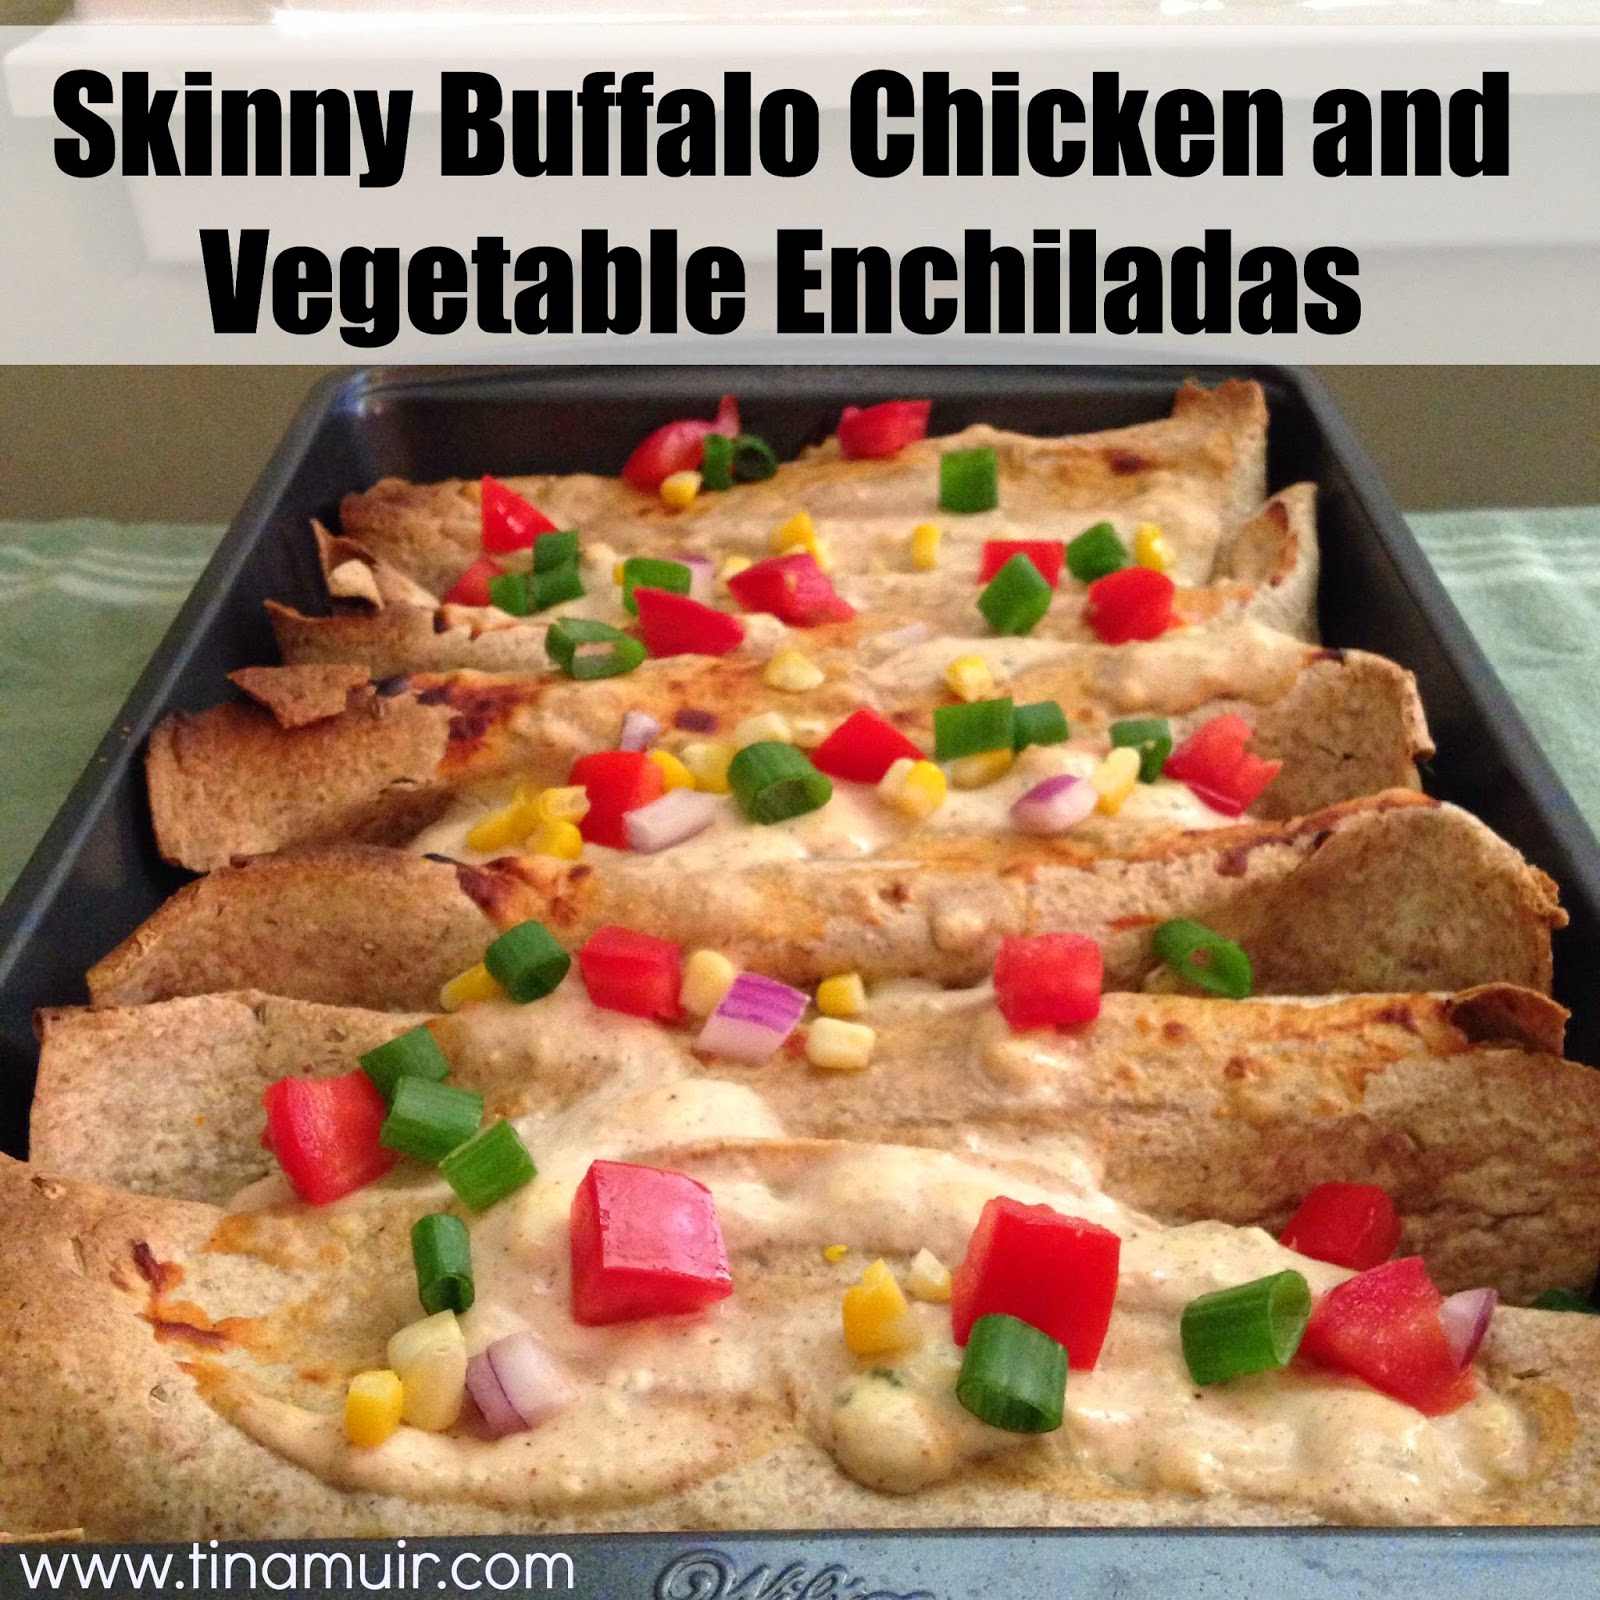 These Skinny Buffalo Chicken and Vegetable Enchiladas by www.tinamuir.com are wonderful to enjoy this American classic without all the calories or fat of deep fried chicken wings.